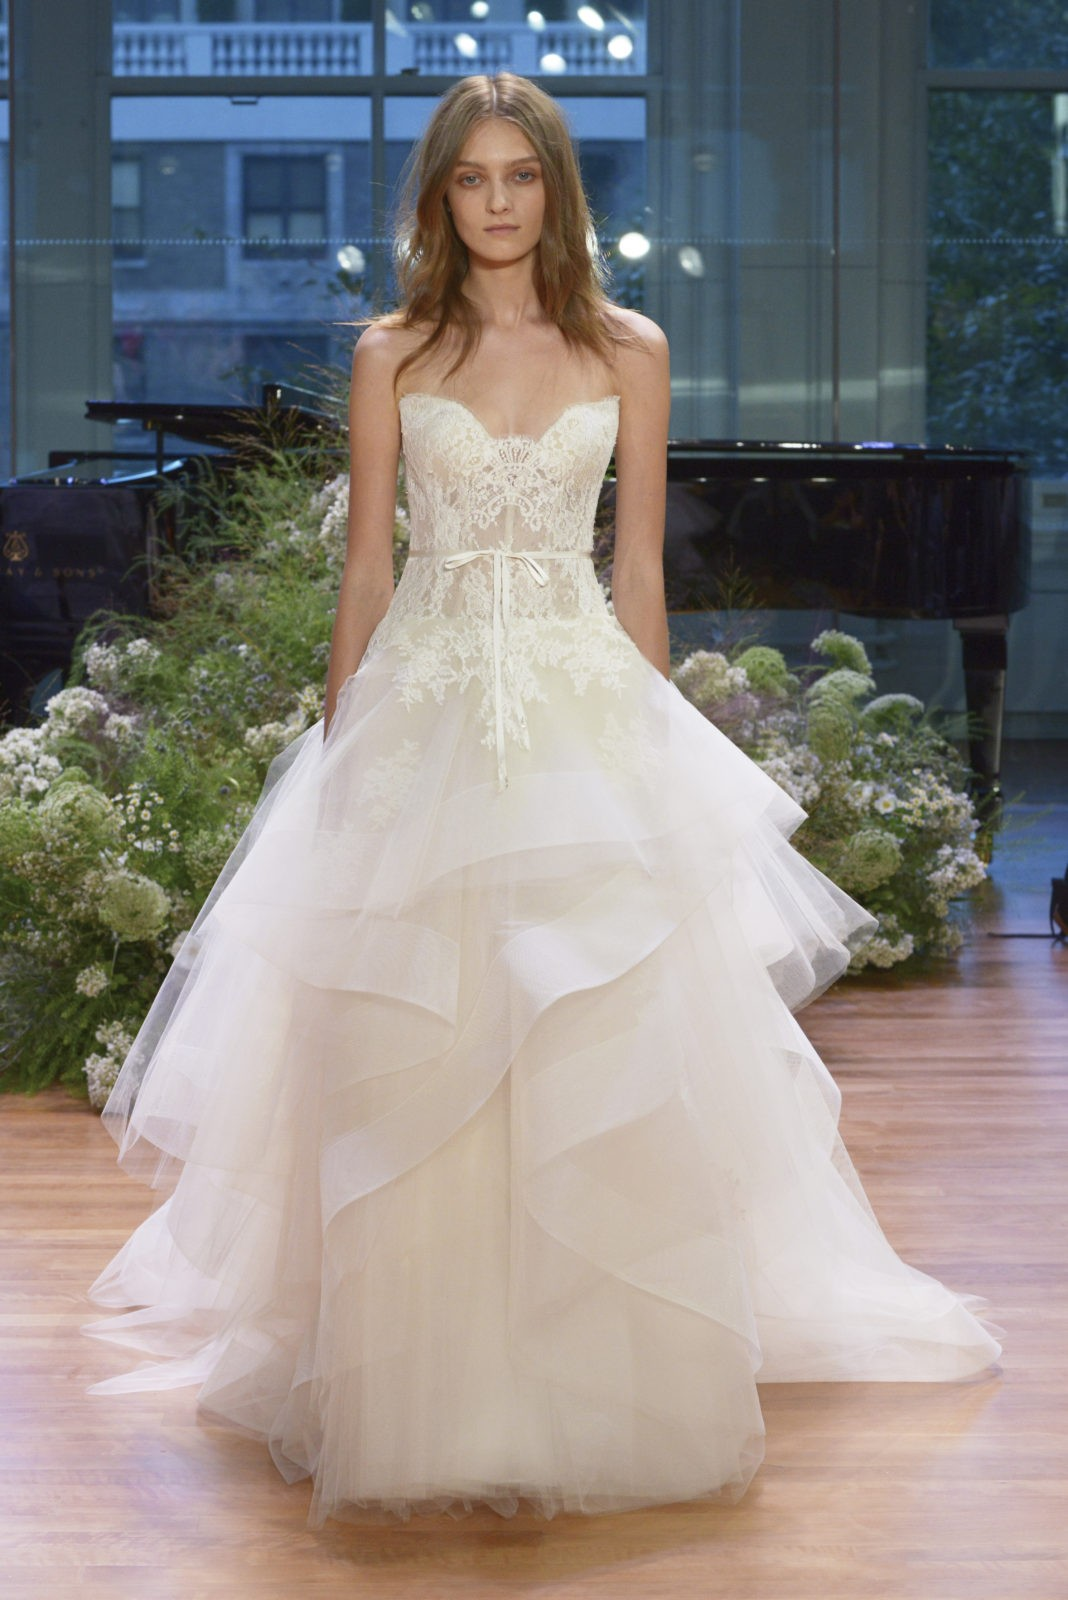 Monique Lhuillier Bridal Trunk Show